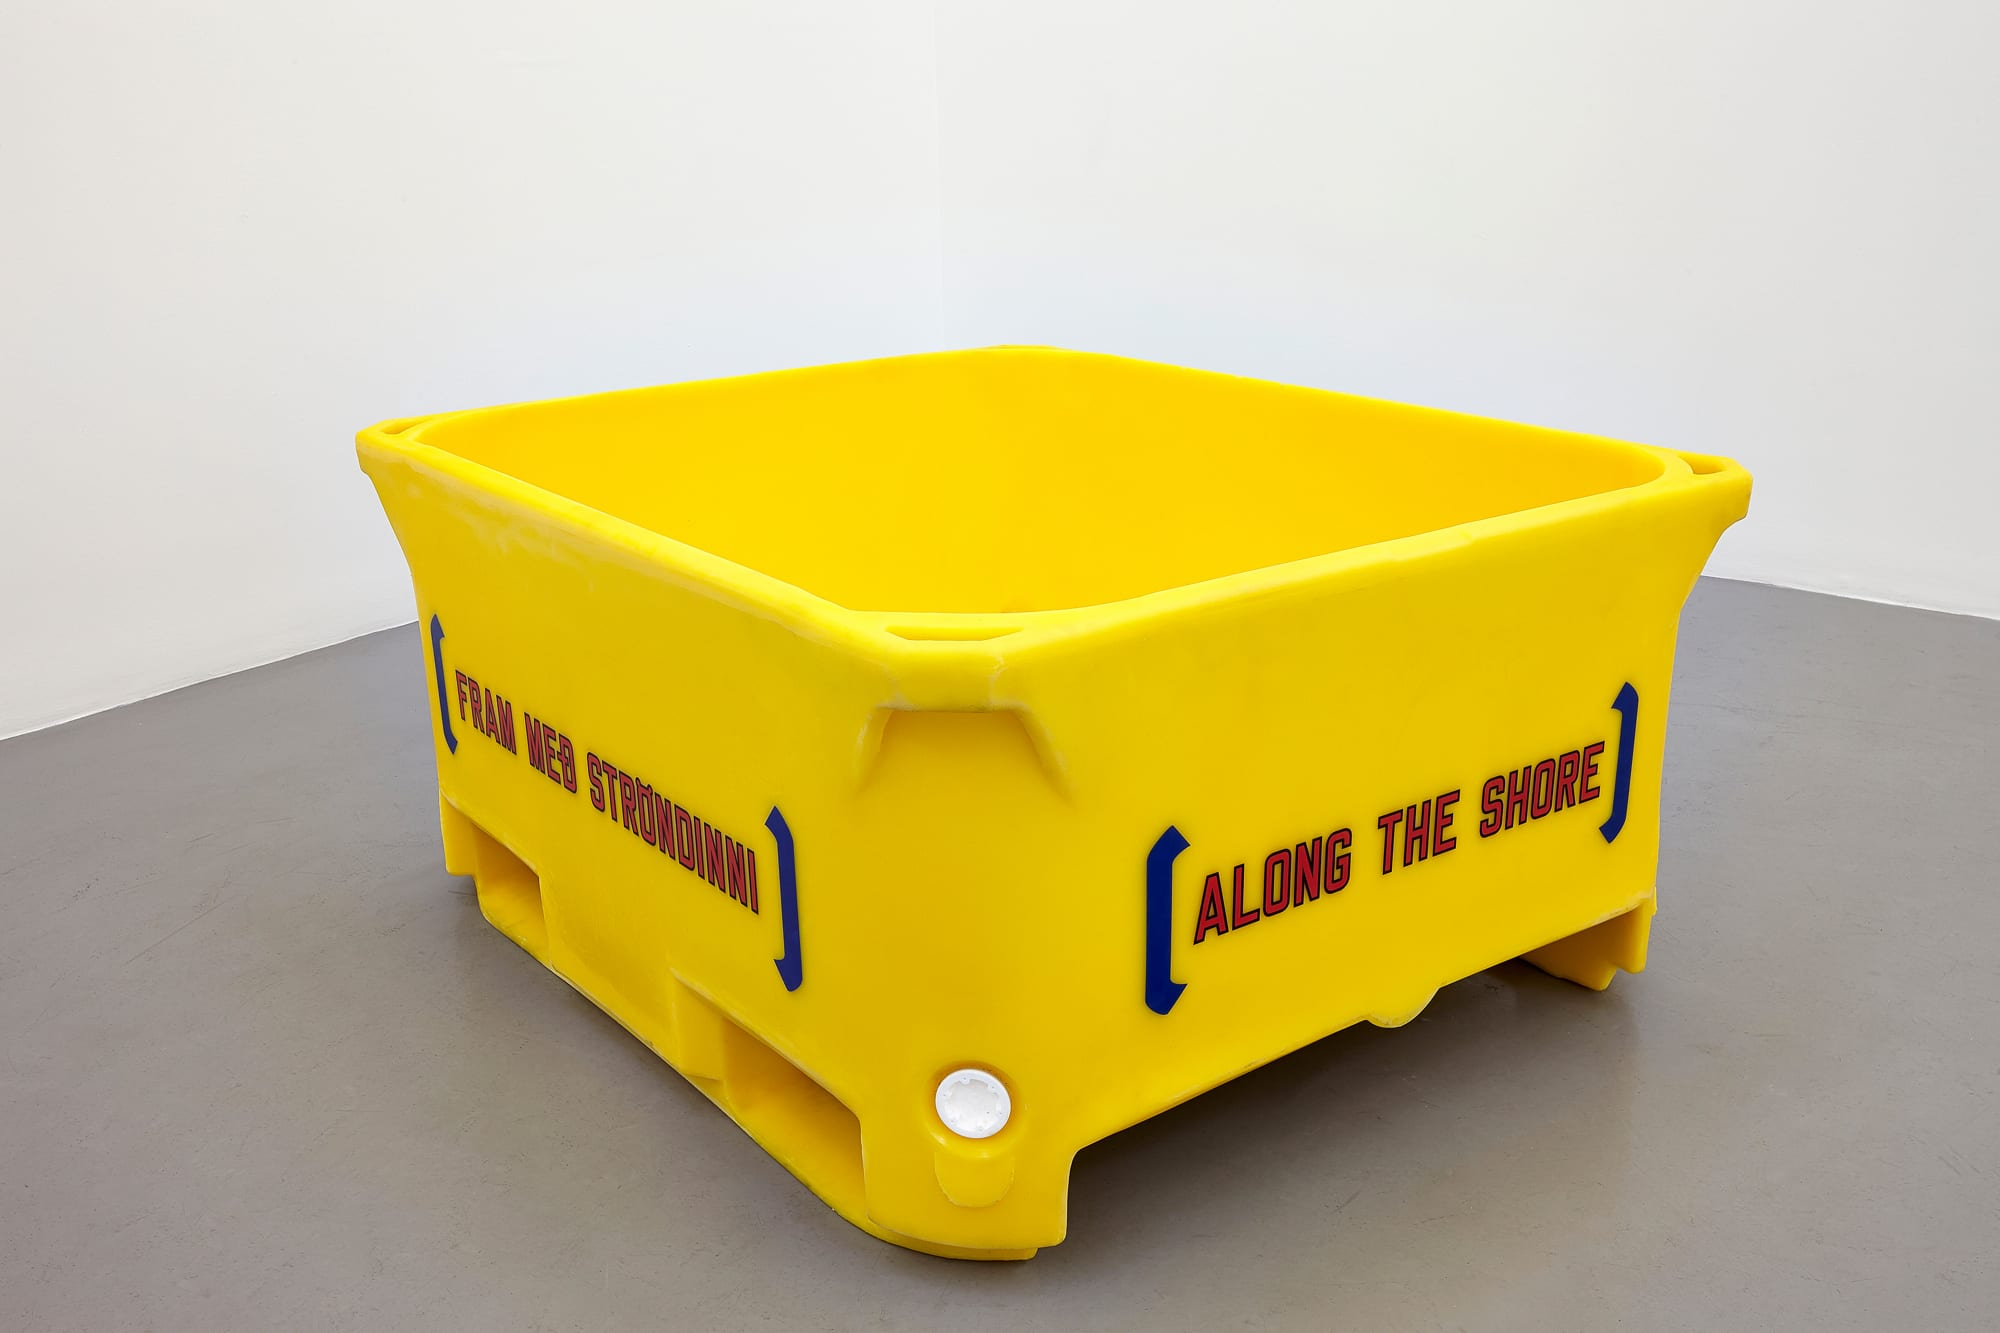 "<span class=""link fancybox-details-link""><a href=""/exhibitions/141/works/artworks13665/"">View Detail Page</a></span><div class=""artist""><strong>LAWRENCE WEINER</strong></div><div class=""title""><em>Fram með ströndinni / Along the Shore</em>, 2014</div><div class=""signed_and_dated"">signed and numbered, bottom</div><div class=""medium"">polyethylene fiskikar /polyethylene fish tub</div><div class=""dimensions"">58.0 x 122.0 x 103.0 cm<br>22 13/16 x 48 x 40 1/2 in</div><div class=""edition_details""></div>"